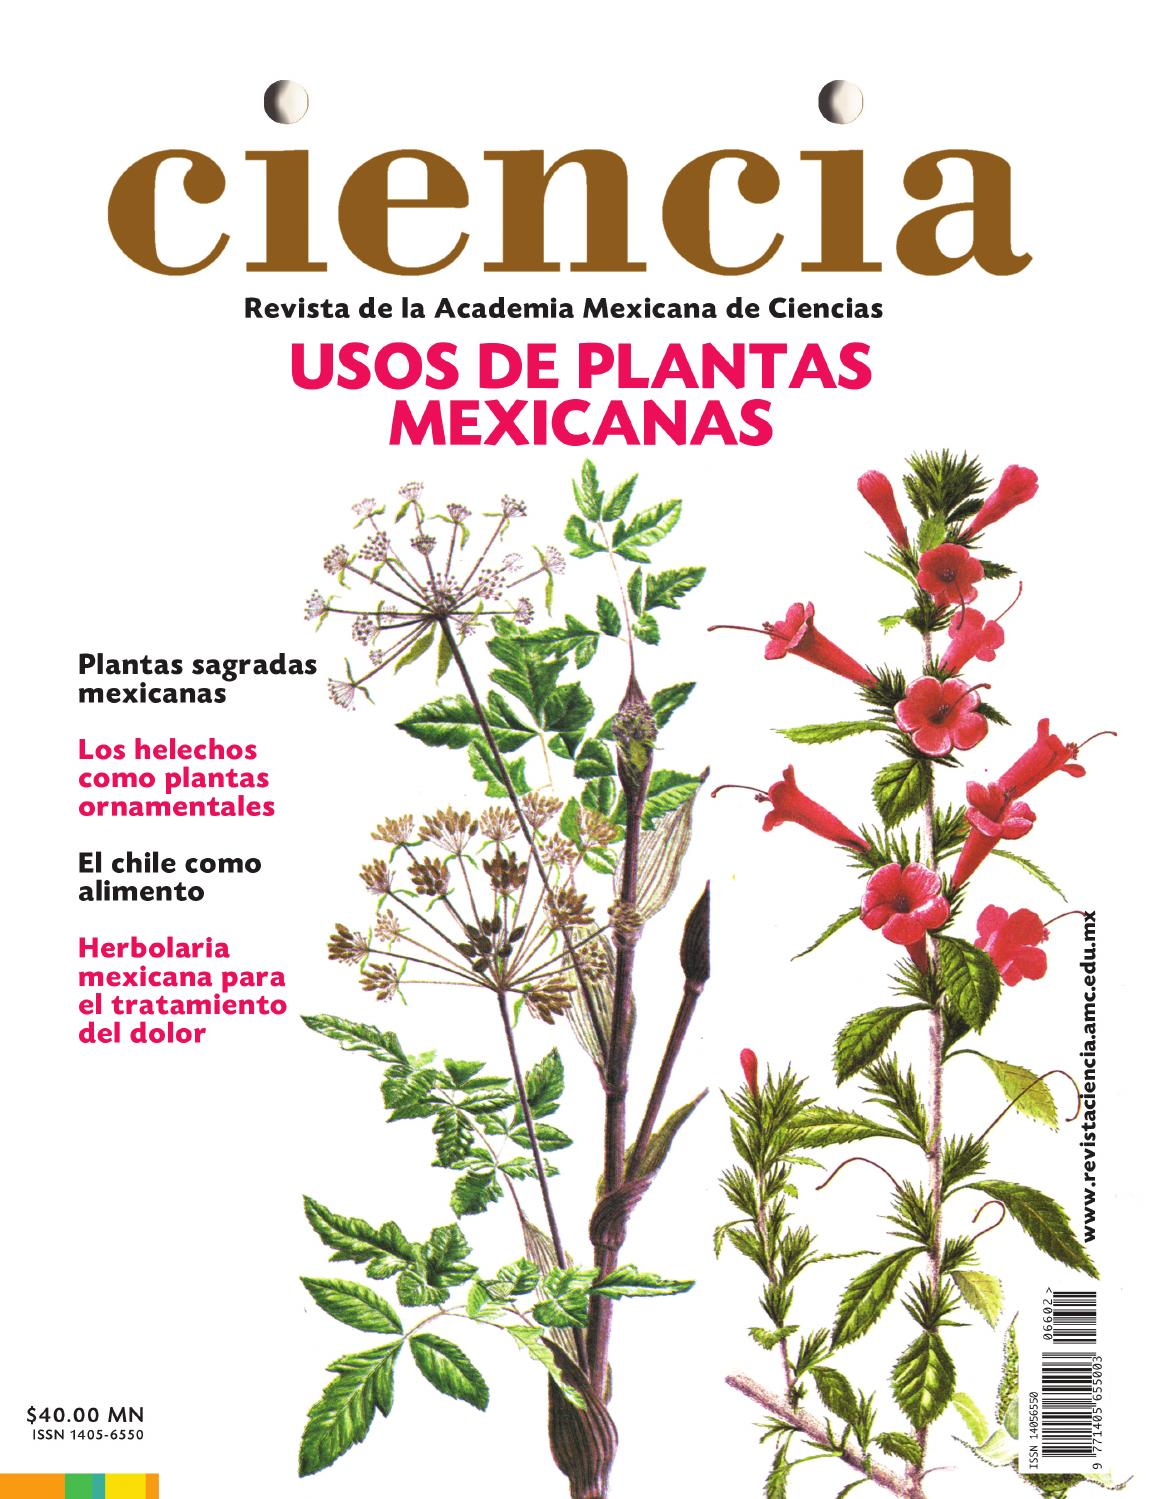 Revista Ciencia vol663 by Academia Mexicana de Ciencias  issuu